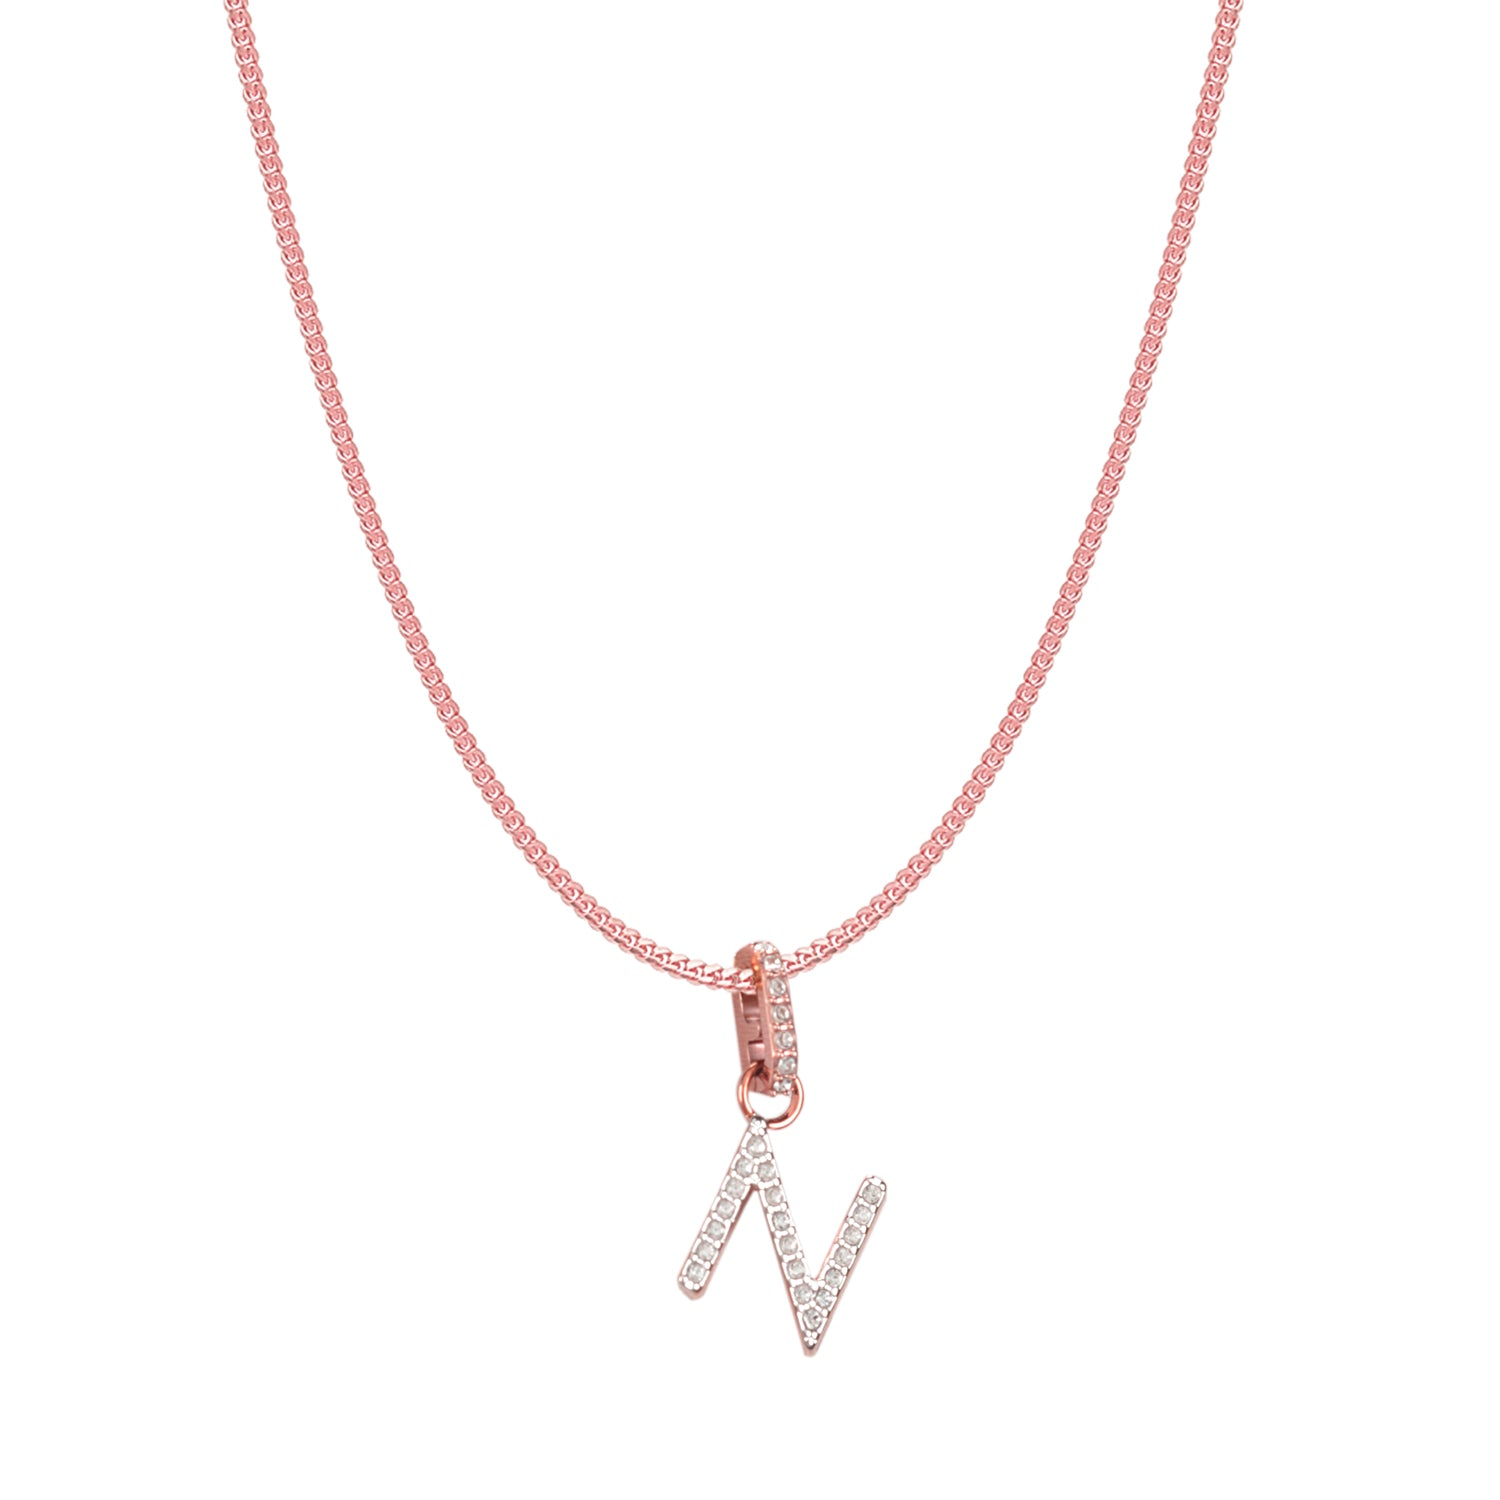 Swarovski Remix Collection N White Charm In Rose-Gold Tone Plated | Shop Luxury Swarovski Charm Online